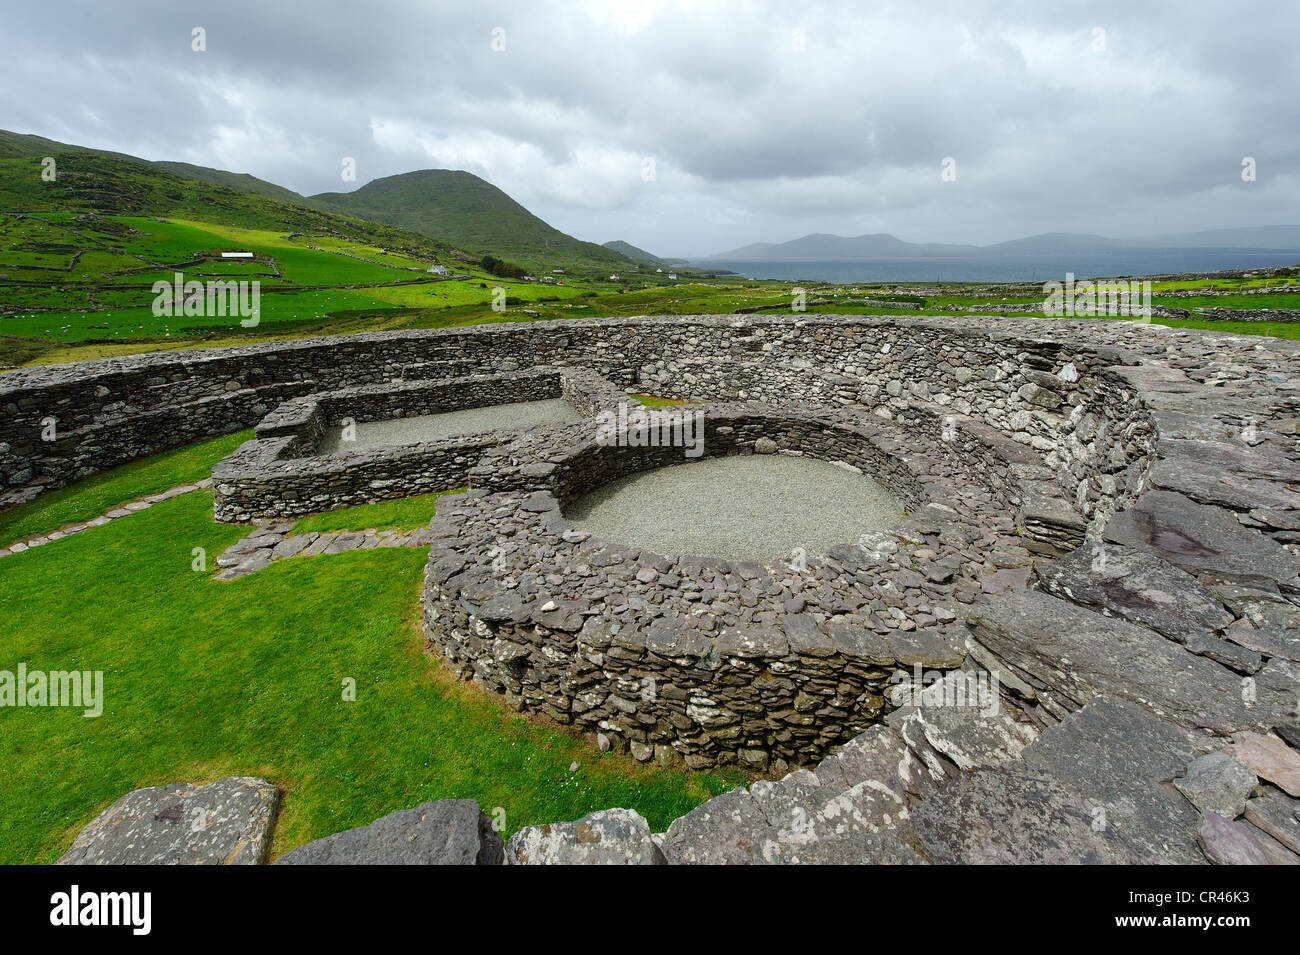 Lóthair Stone Fort, 9th Century AD, near Waterville, Ring of Kerry, County Kerry, Ireland, Europe - Stock Image